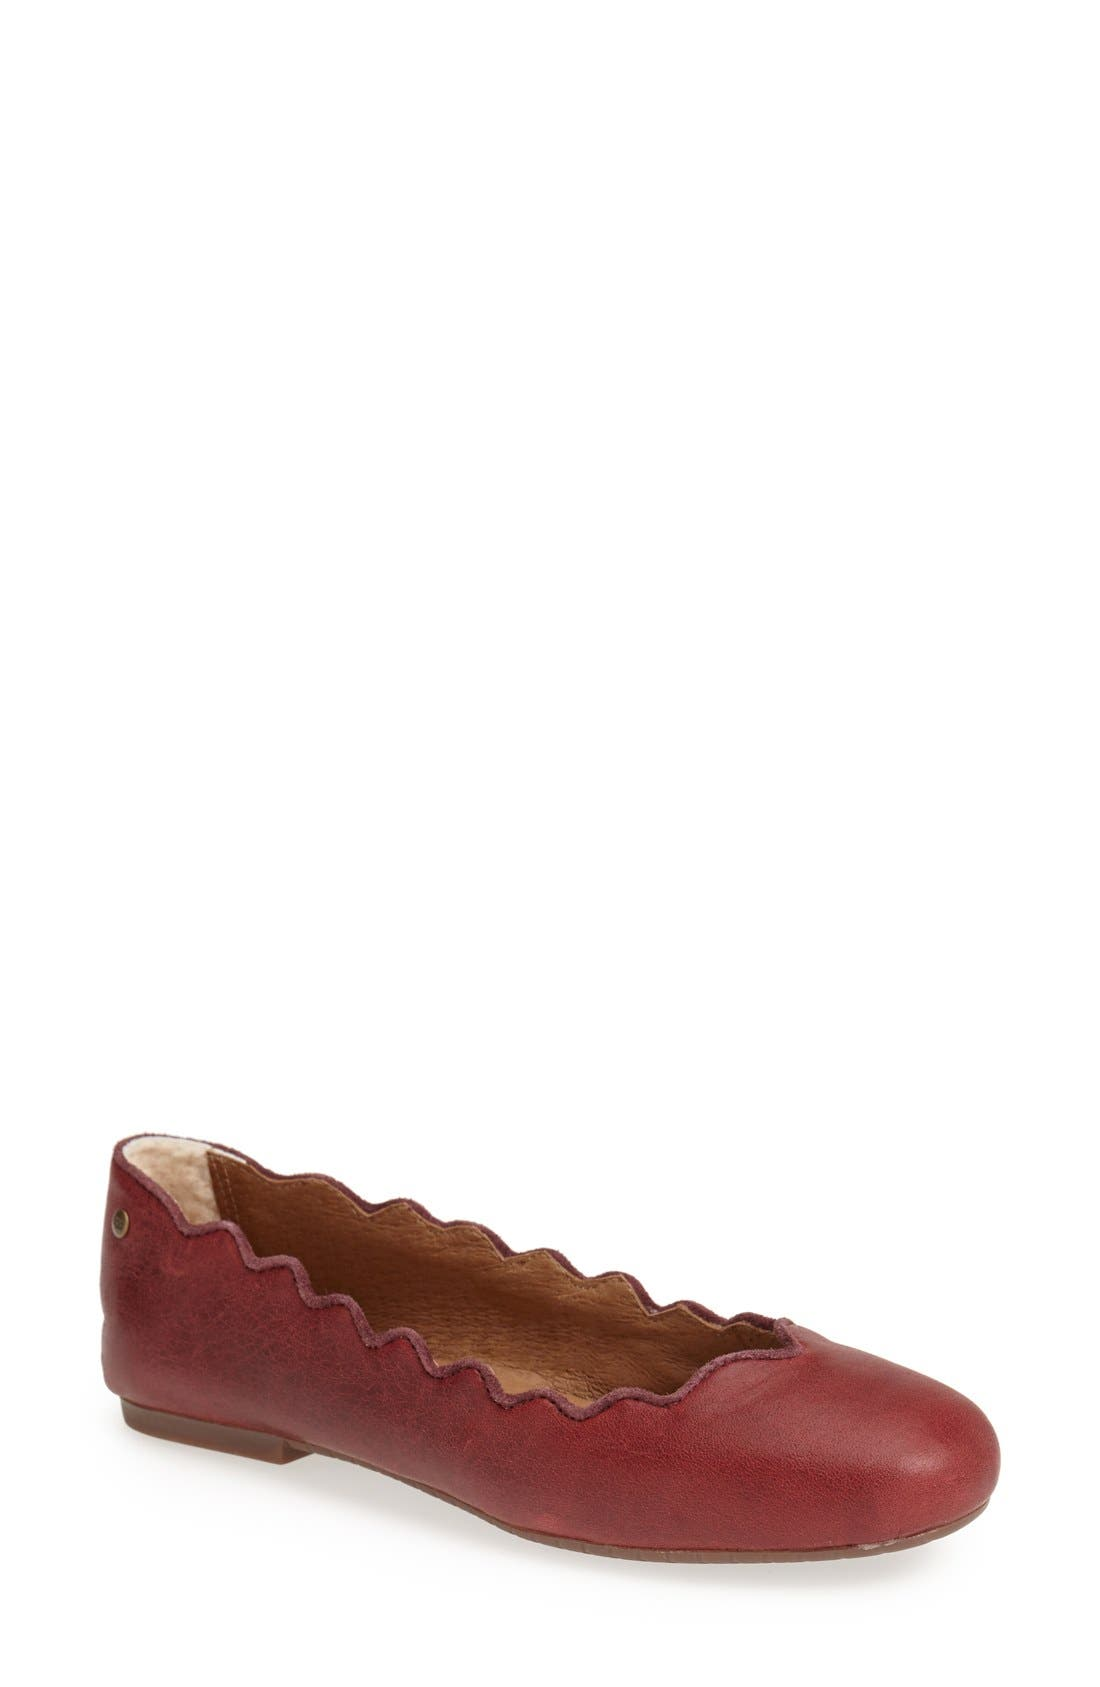 Main Image - UGG® Australia 'Chandra' Scalloped Flat (Women)